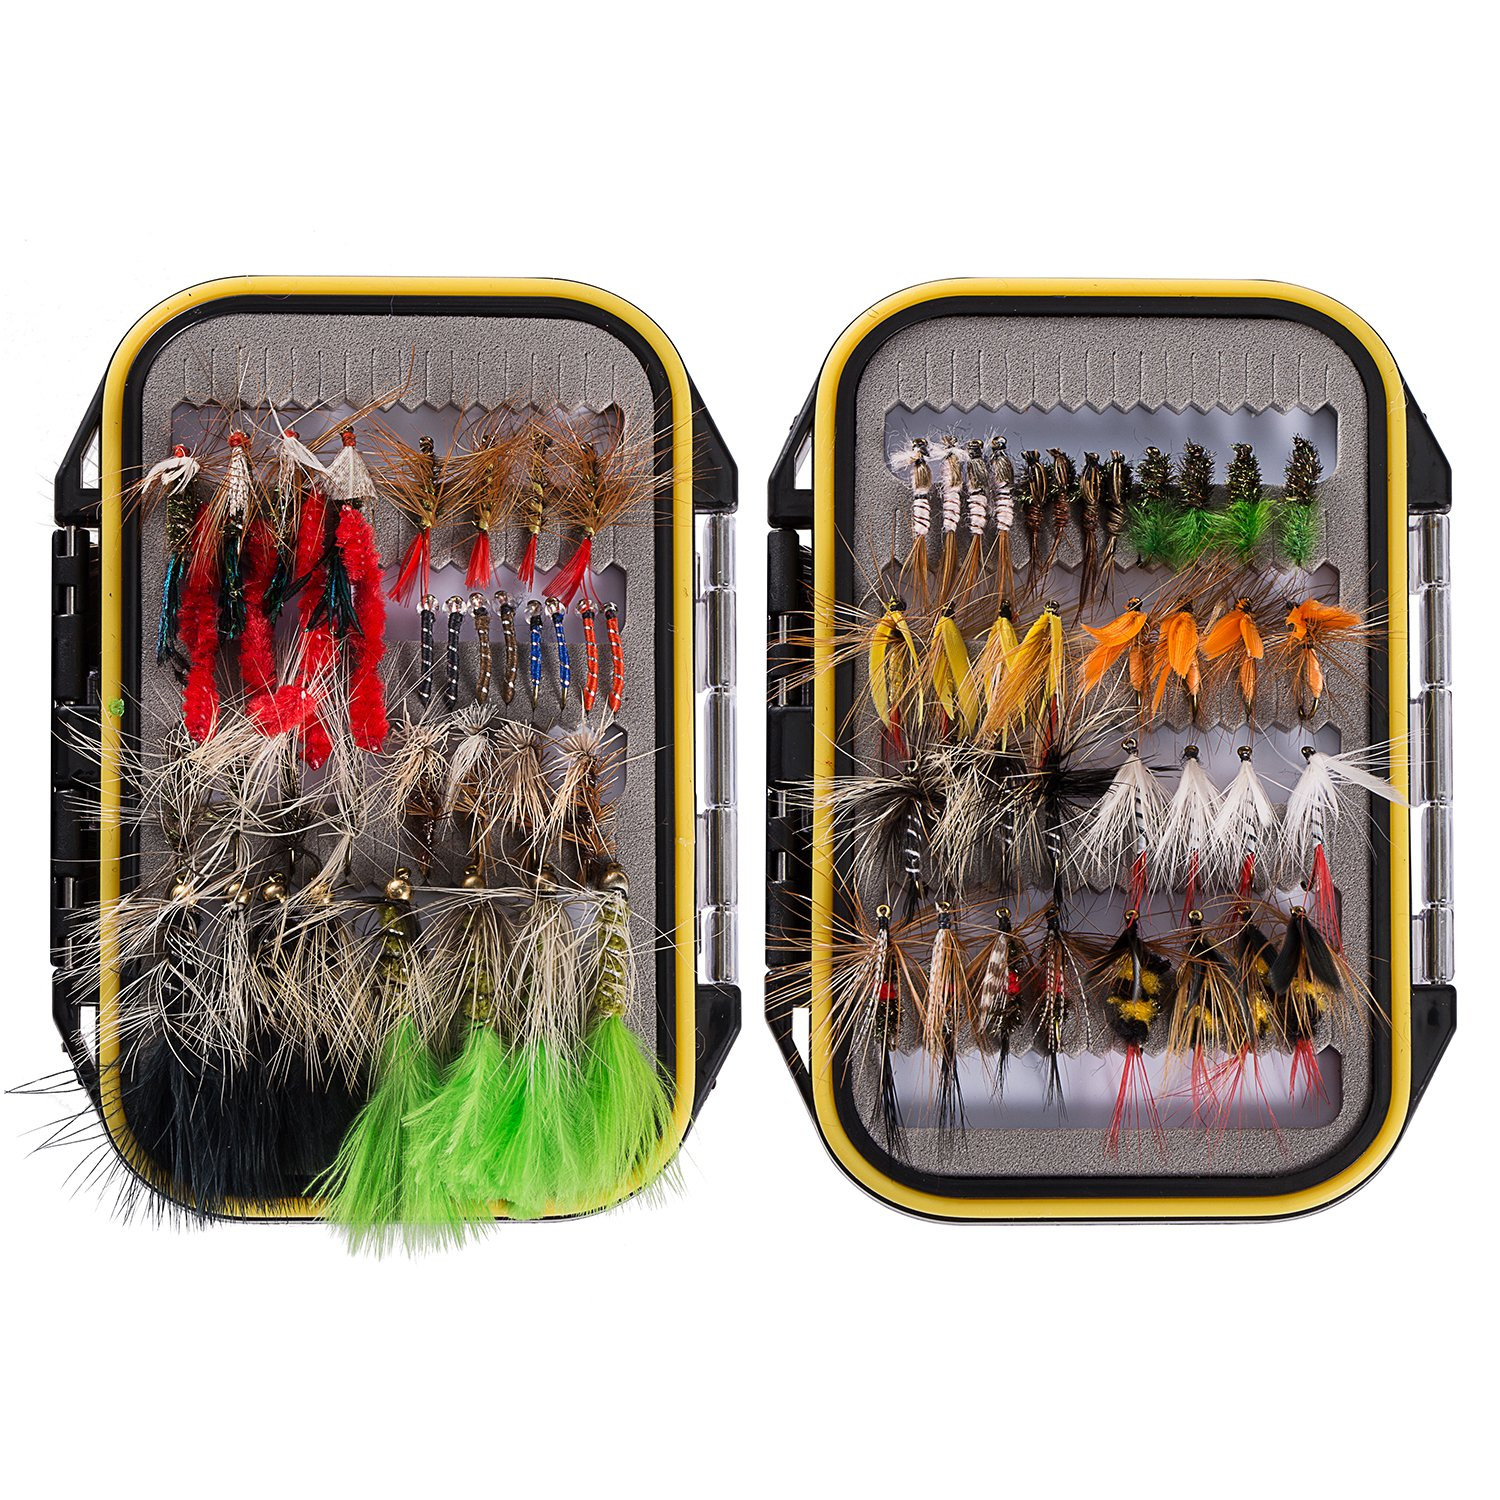 Bassdash Fly Fishing Assorted Flies Kit, Pack of 72 pcs Fly Lure Including Dry Flies, Wet Flies, Nymphs, Terrestrials, Midges, Streamers and More, with Double-Side Waterproof Fly Box by Bassdash